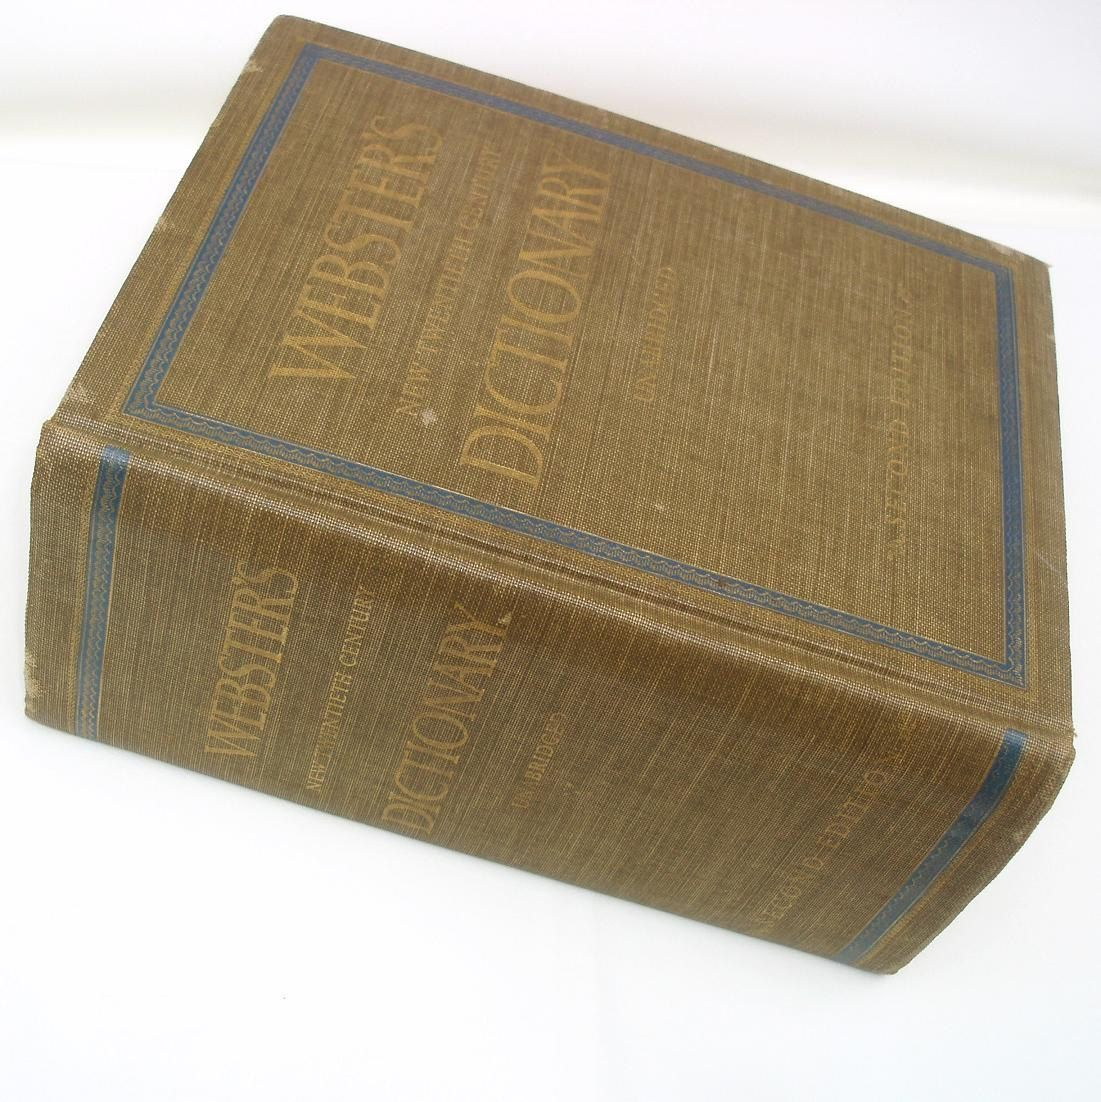 antique dictionary large websters unabridged dictionary brown antique dictionary large websters unabridged dictionary brown green blue decorative book home decor second edition reference book by whimzythyme on etsy